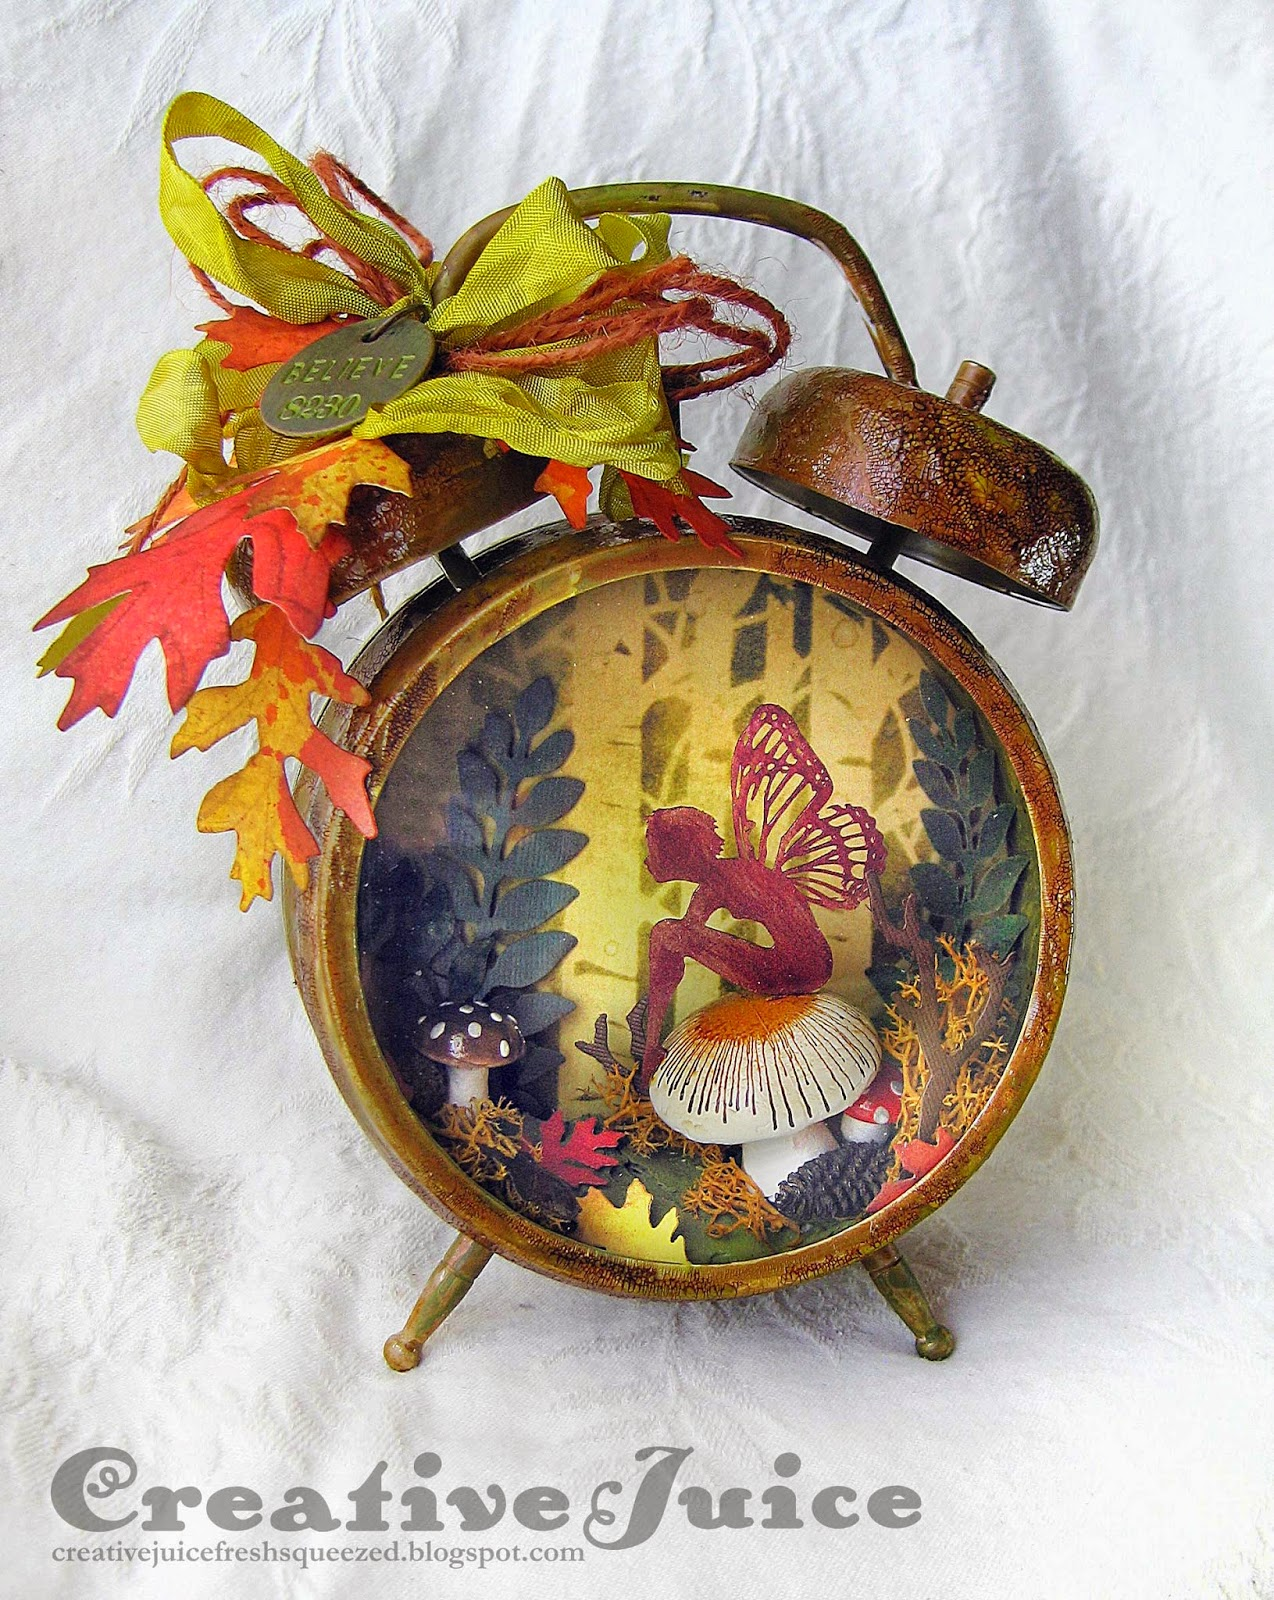 Compendium-of-Curiosities-3_Assemblage-Clock_Autumn-fairy